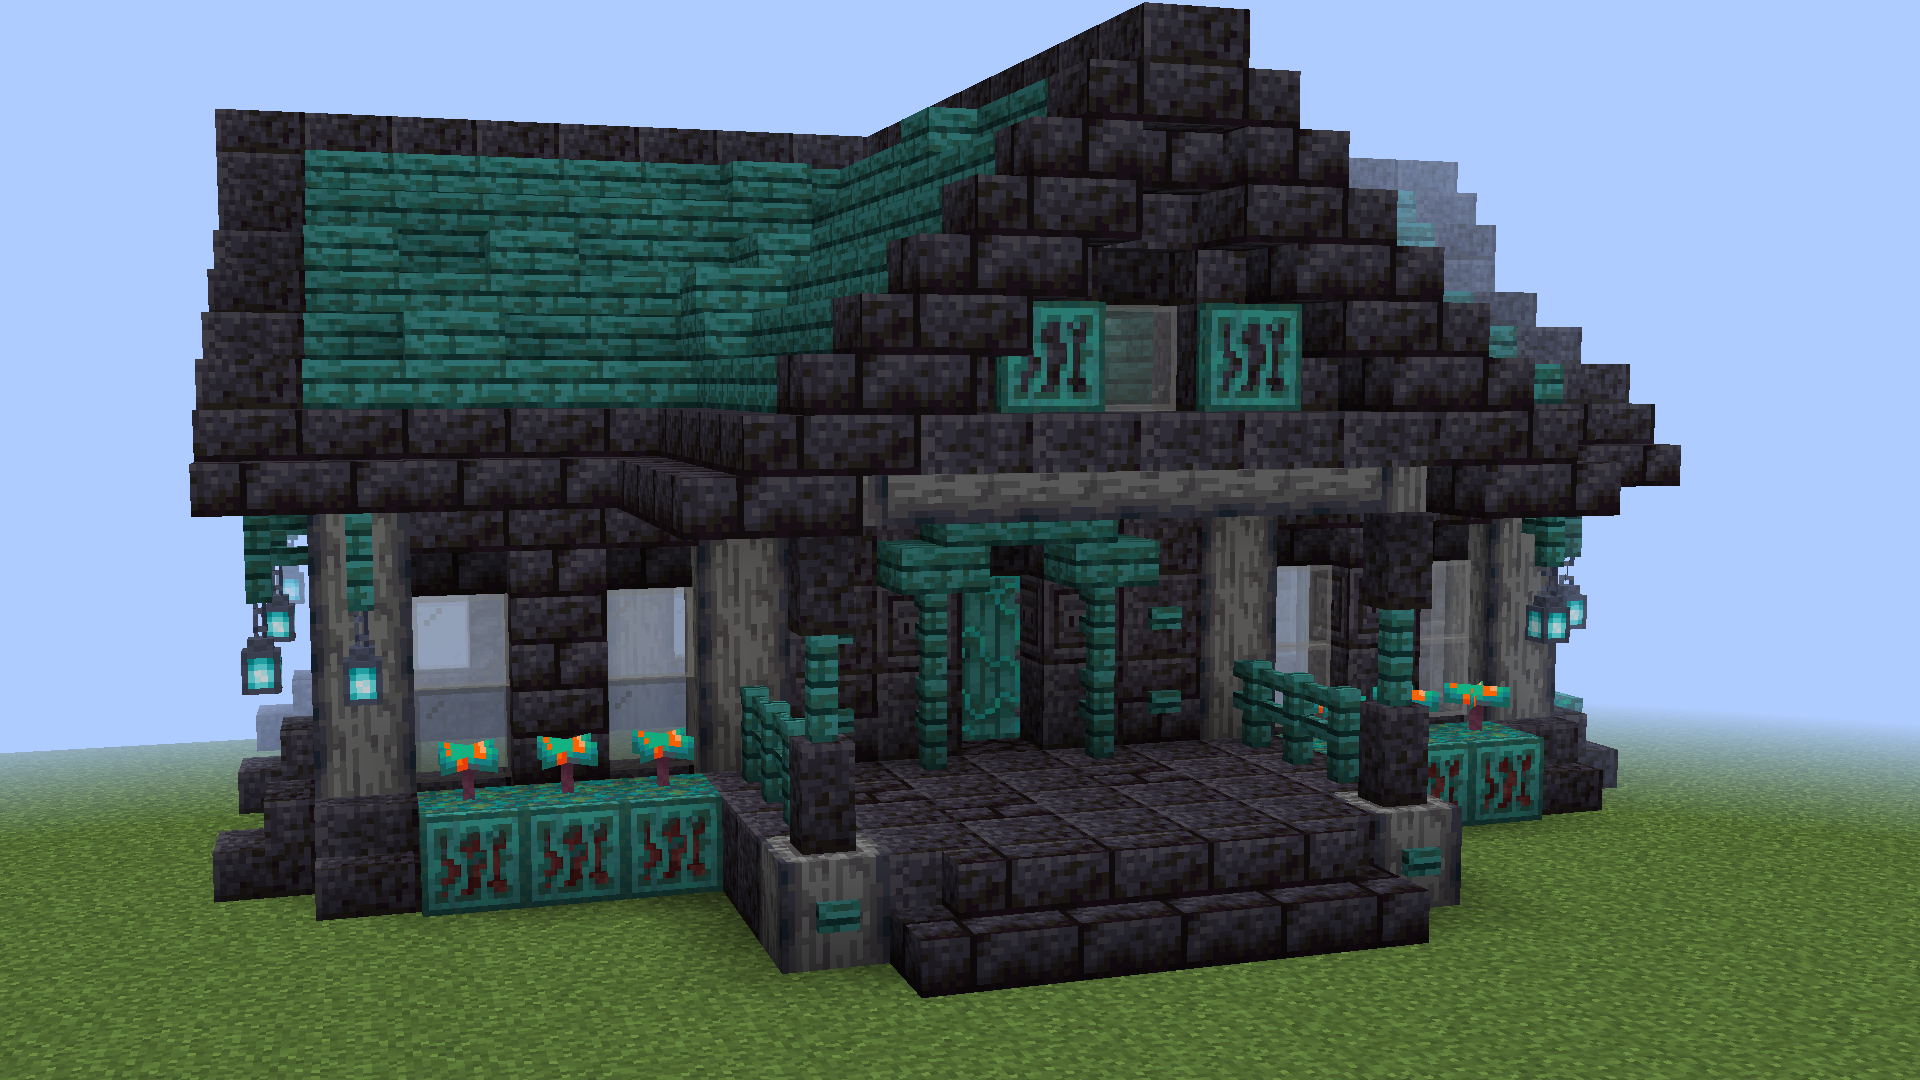 Cute House Made With Nether Blocks By U Armoireeuw Minecraft Decorations Minecraft Crafts Minecraft Blueprints